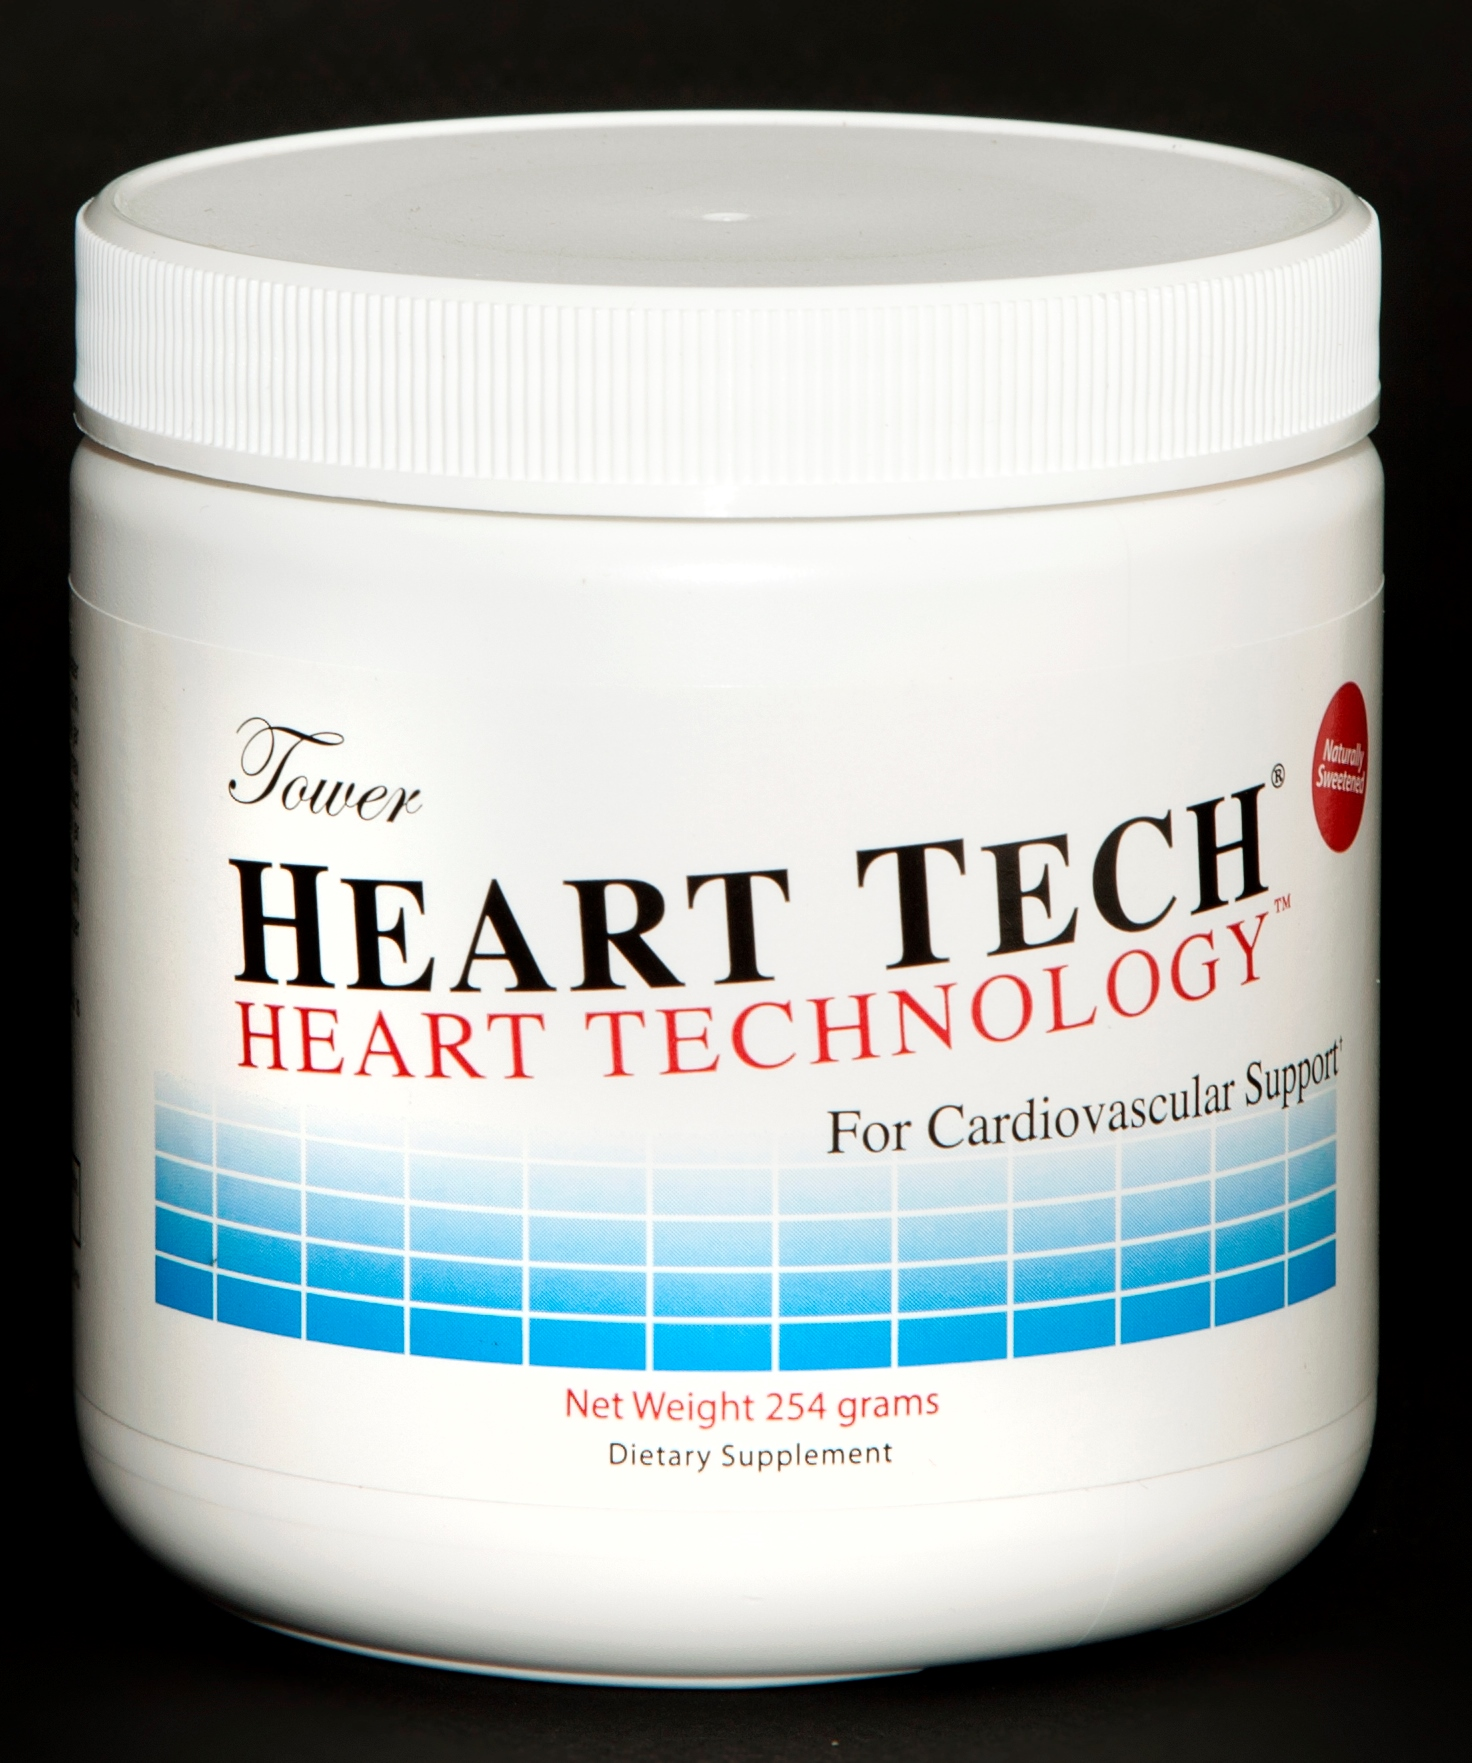 Tower Laboratories Heart Technology Product